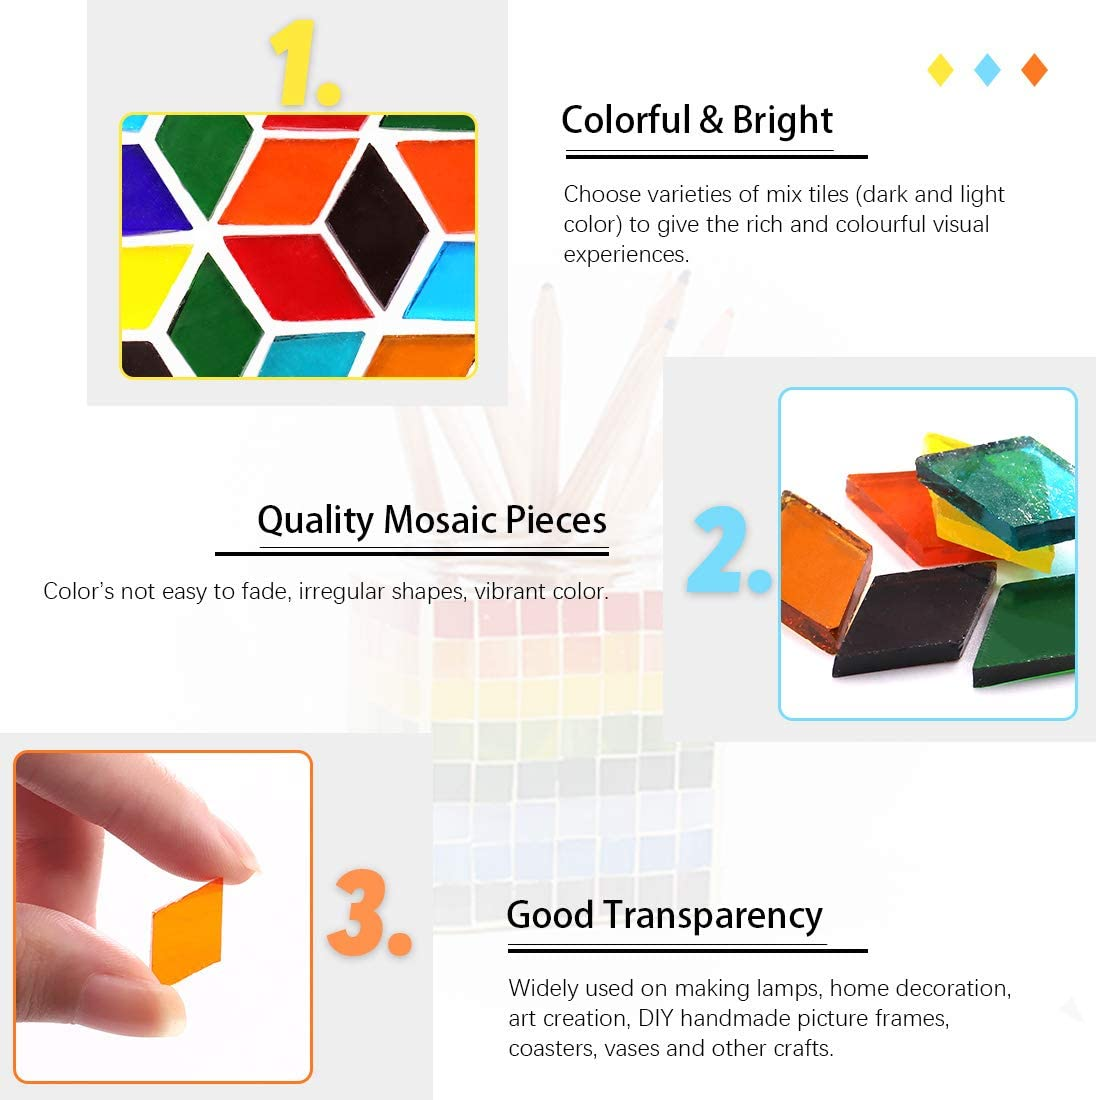 Flowerpots Handmade Jewelry and More Plates Picture Frames Hilitchi 1lb Assorted Stained Glass Mosaic Tile Mixed Shapes and Colors Glass Pieces for DIY Crafts Mix Shape